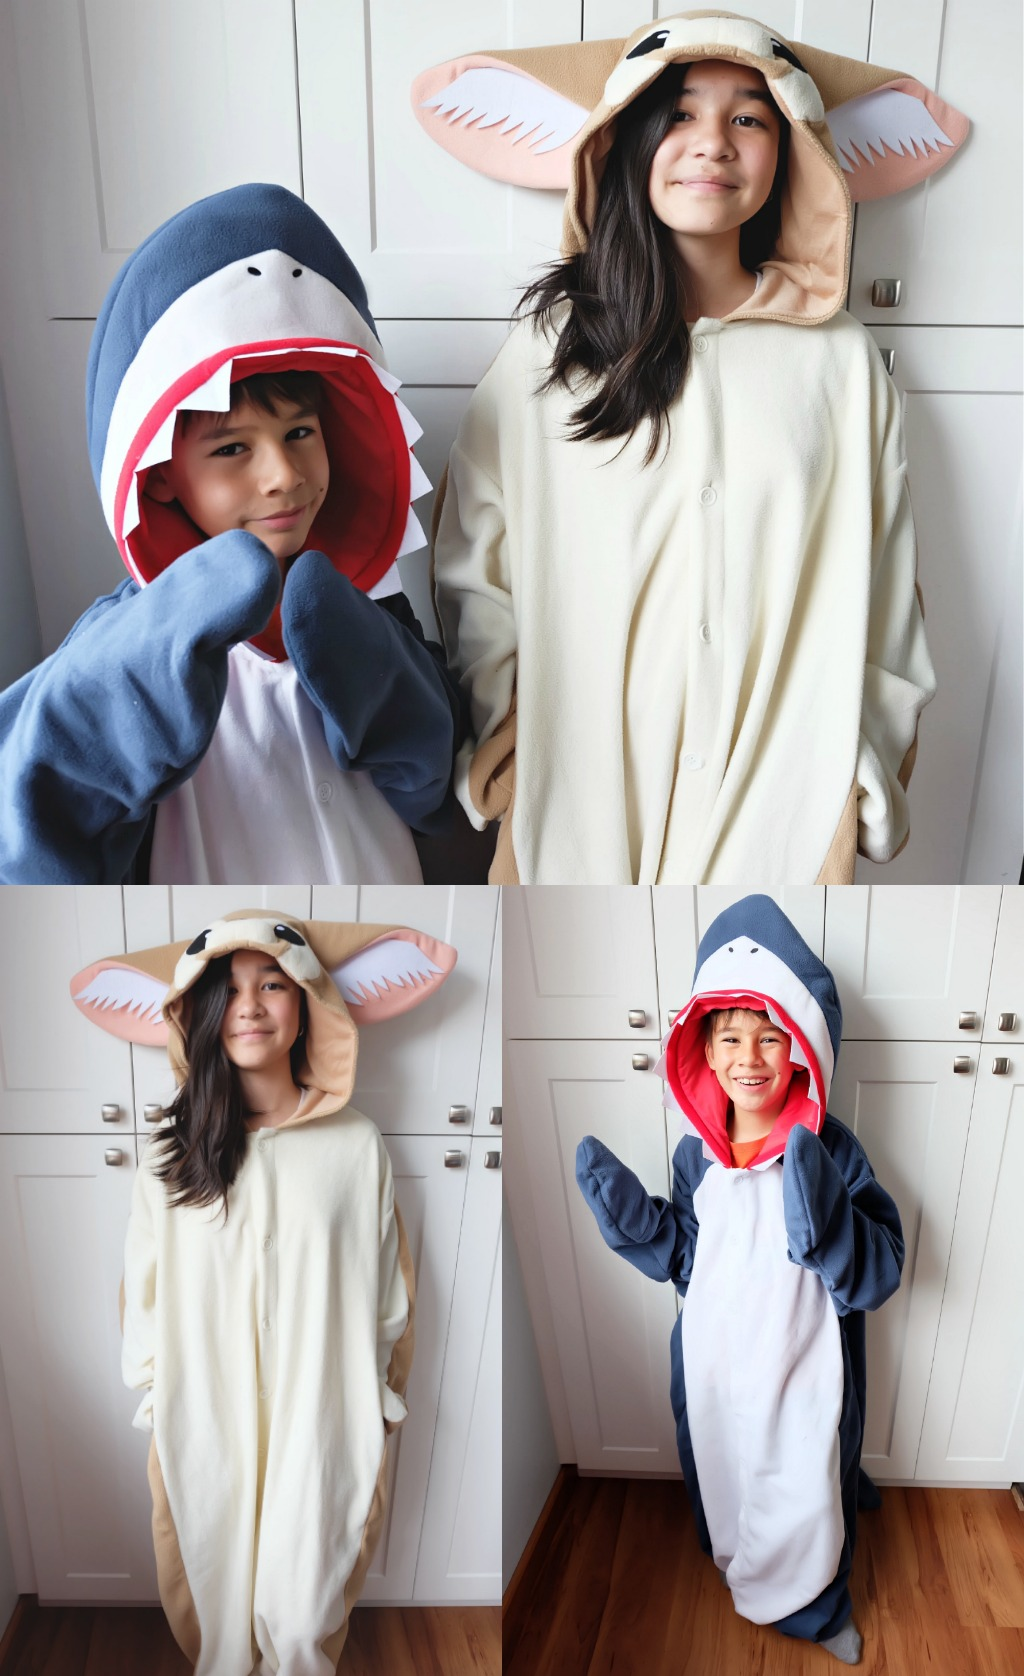 DIY not your thing? Kigurumi has adorable onesies in kid and adult sizes that come in all of your favorite animals and cartoon characters! I love them because like these animal hoodies, they can be worn not just on Halloween but all year long! My kids have theShark Kigurumiand theFennec Fox Kigurumiand they love them. I, myself adorethis adorablePanda Kigurumi! I think it's probably the cutest panda onesie in the whole wide world! Do you agree?